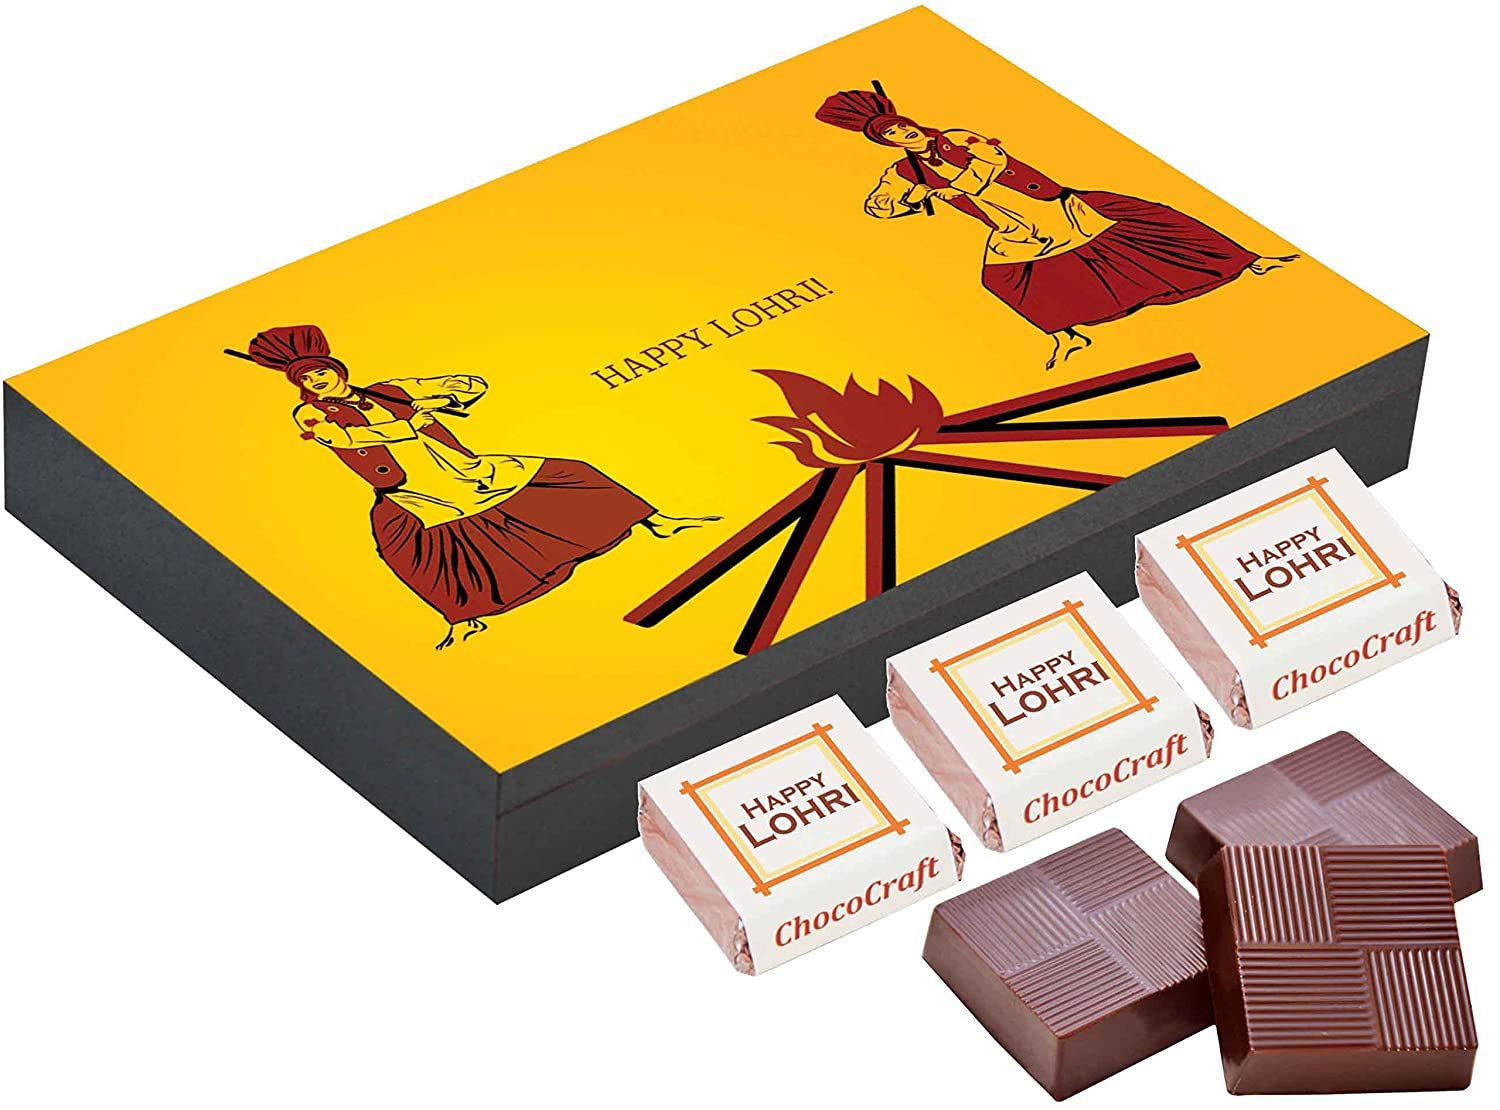 Chococraft Lohri Gifts Ideas 6 Chocolate Gift Box Unique Gift For Lohri Amazon In Grocery Gourmet Foods